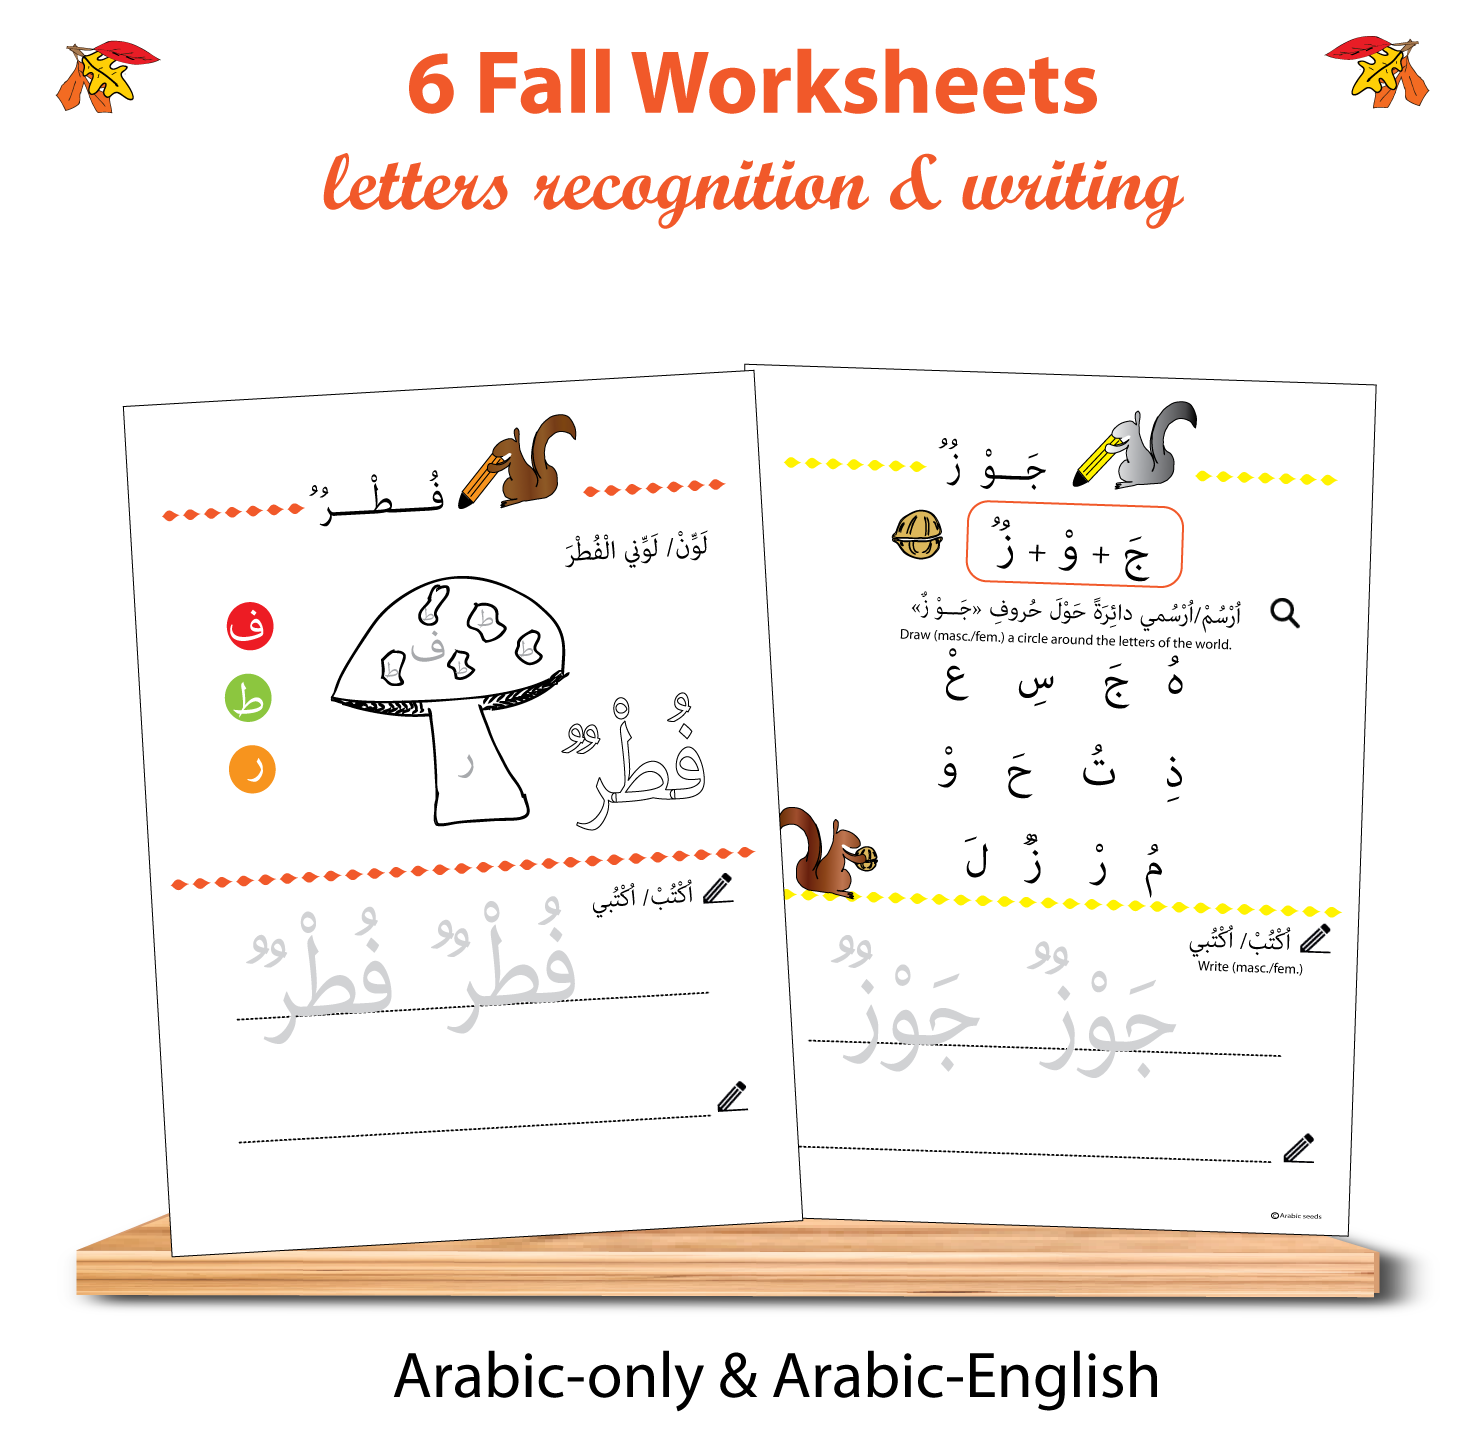 Fall Arabic Worksheets Writing Amp Letters Recognition Arabic Only And Arabic English